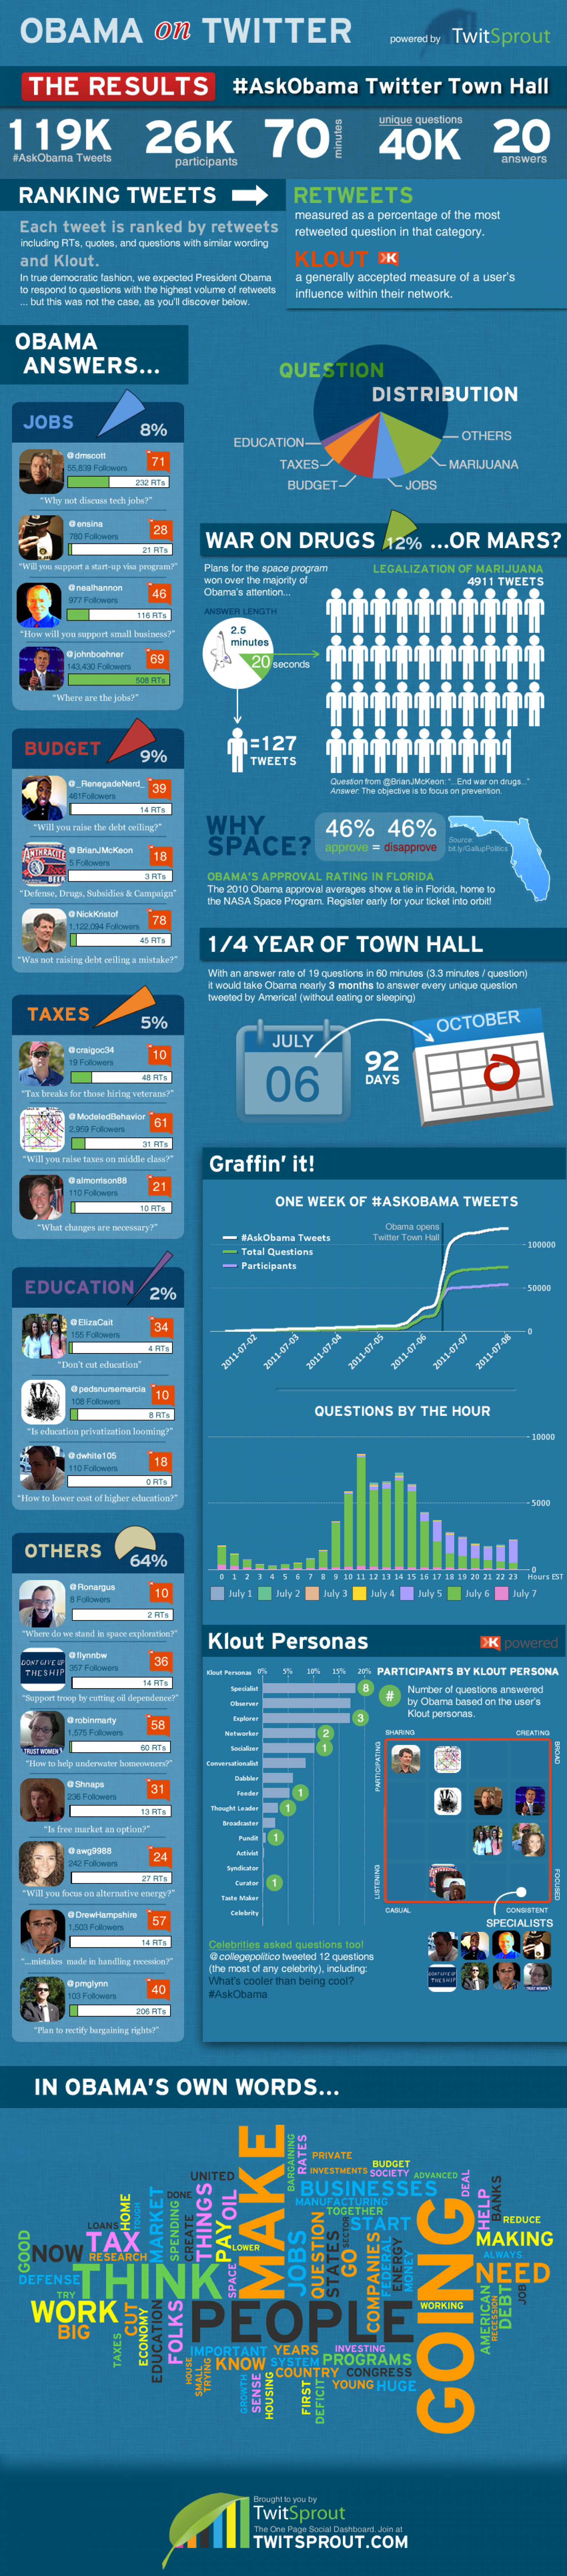 Obama Town Hall Results Infographic